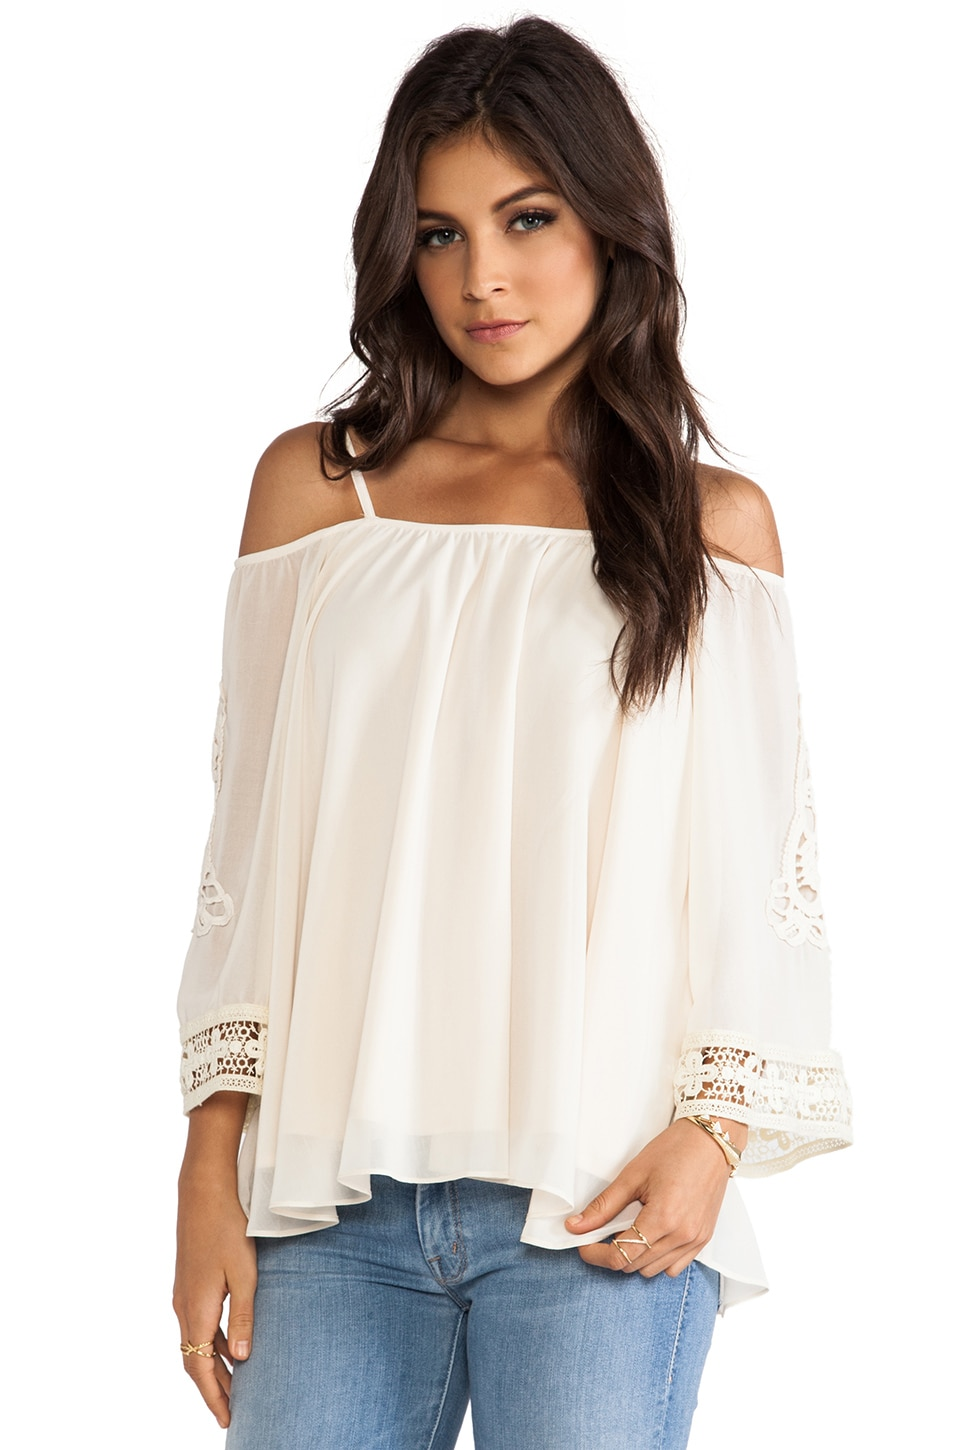 VAVA by Joy Han Eva Open Shoulder Top in Ivory